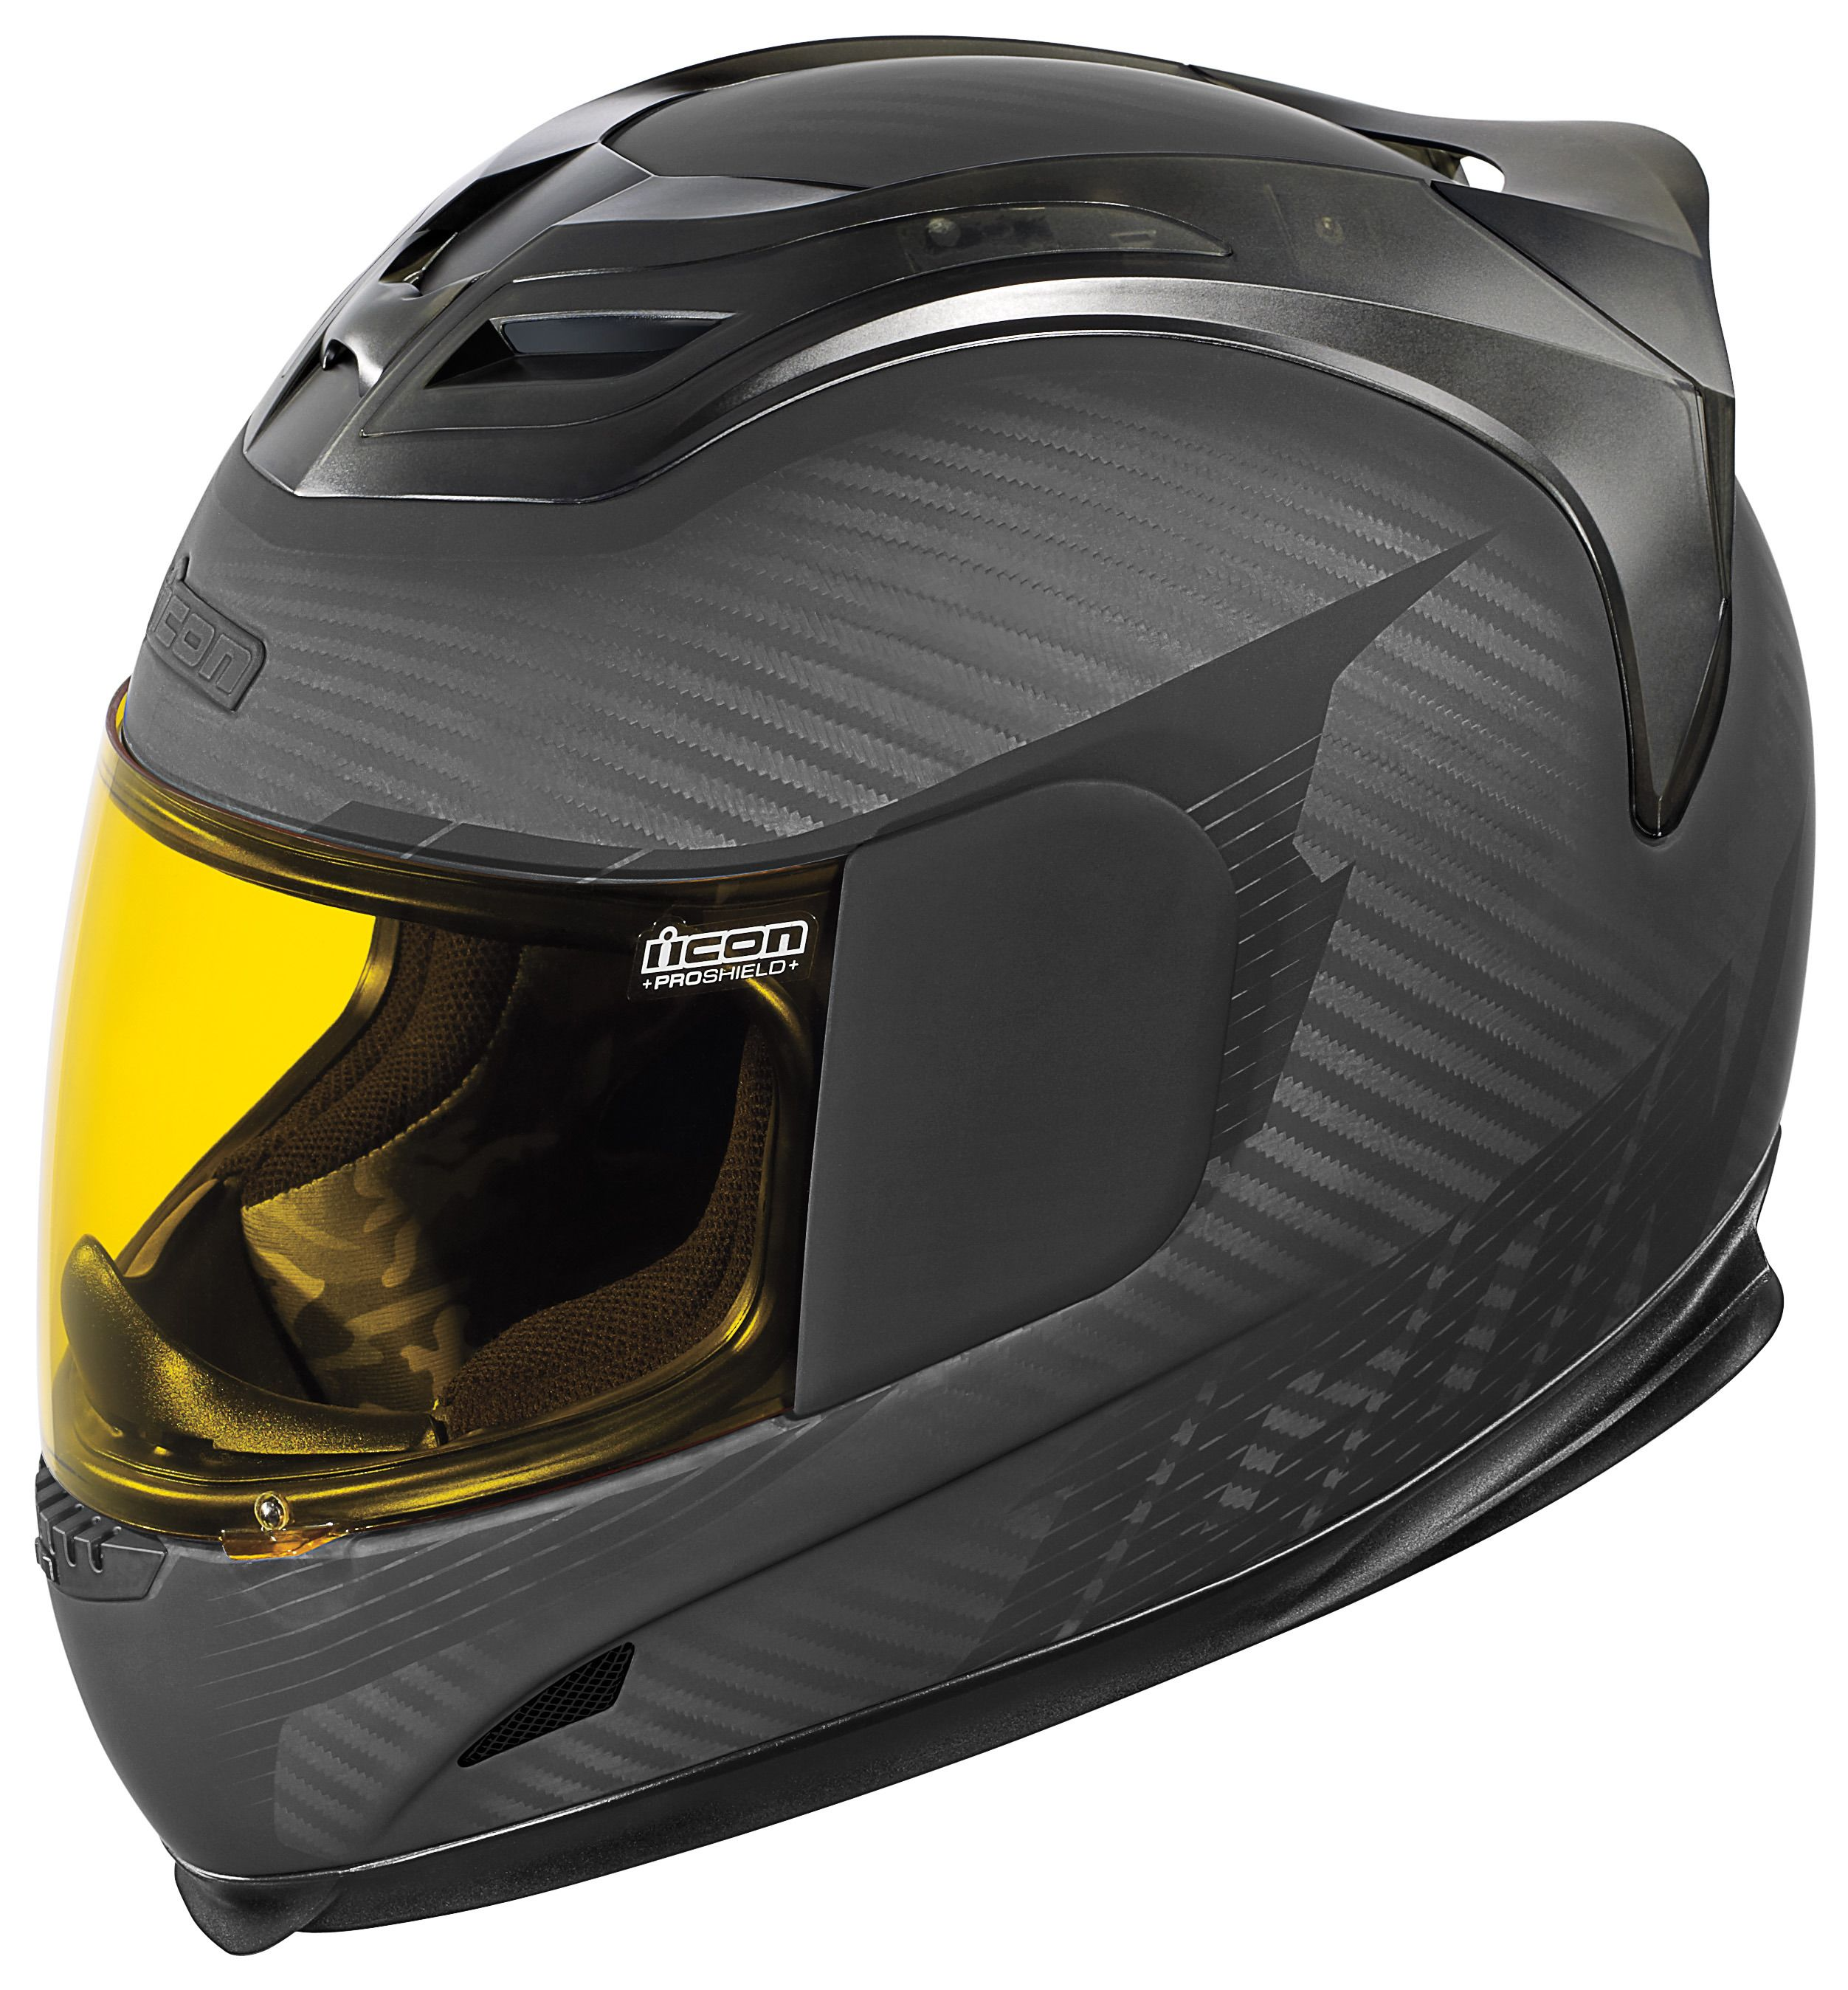 Carbon Fiber Motorcycle Helmet >> Icon Airframe Ghost Carbon Helmet (Size 3XL Only) - RevZilla